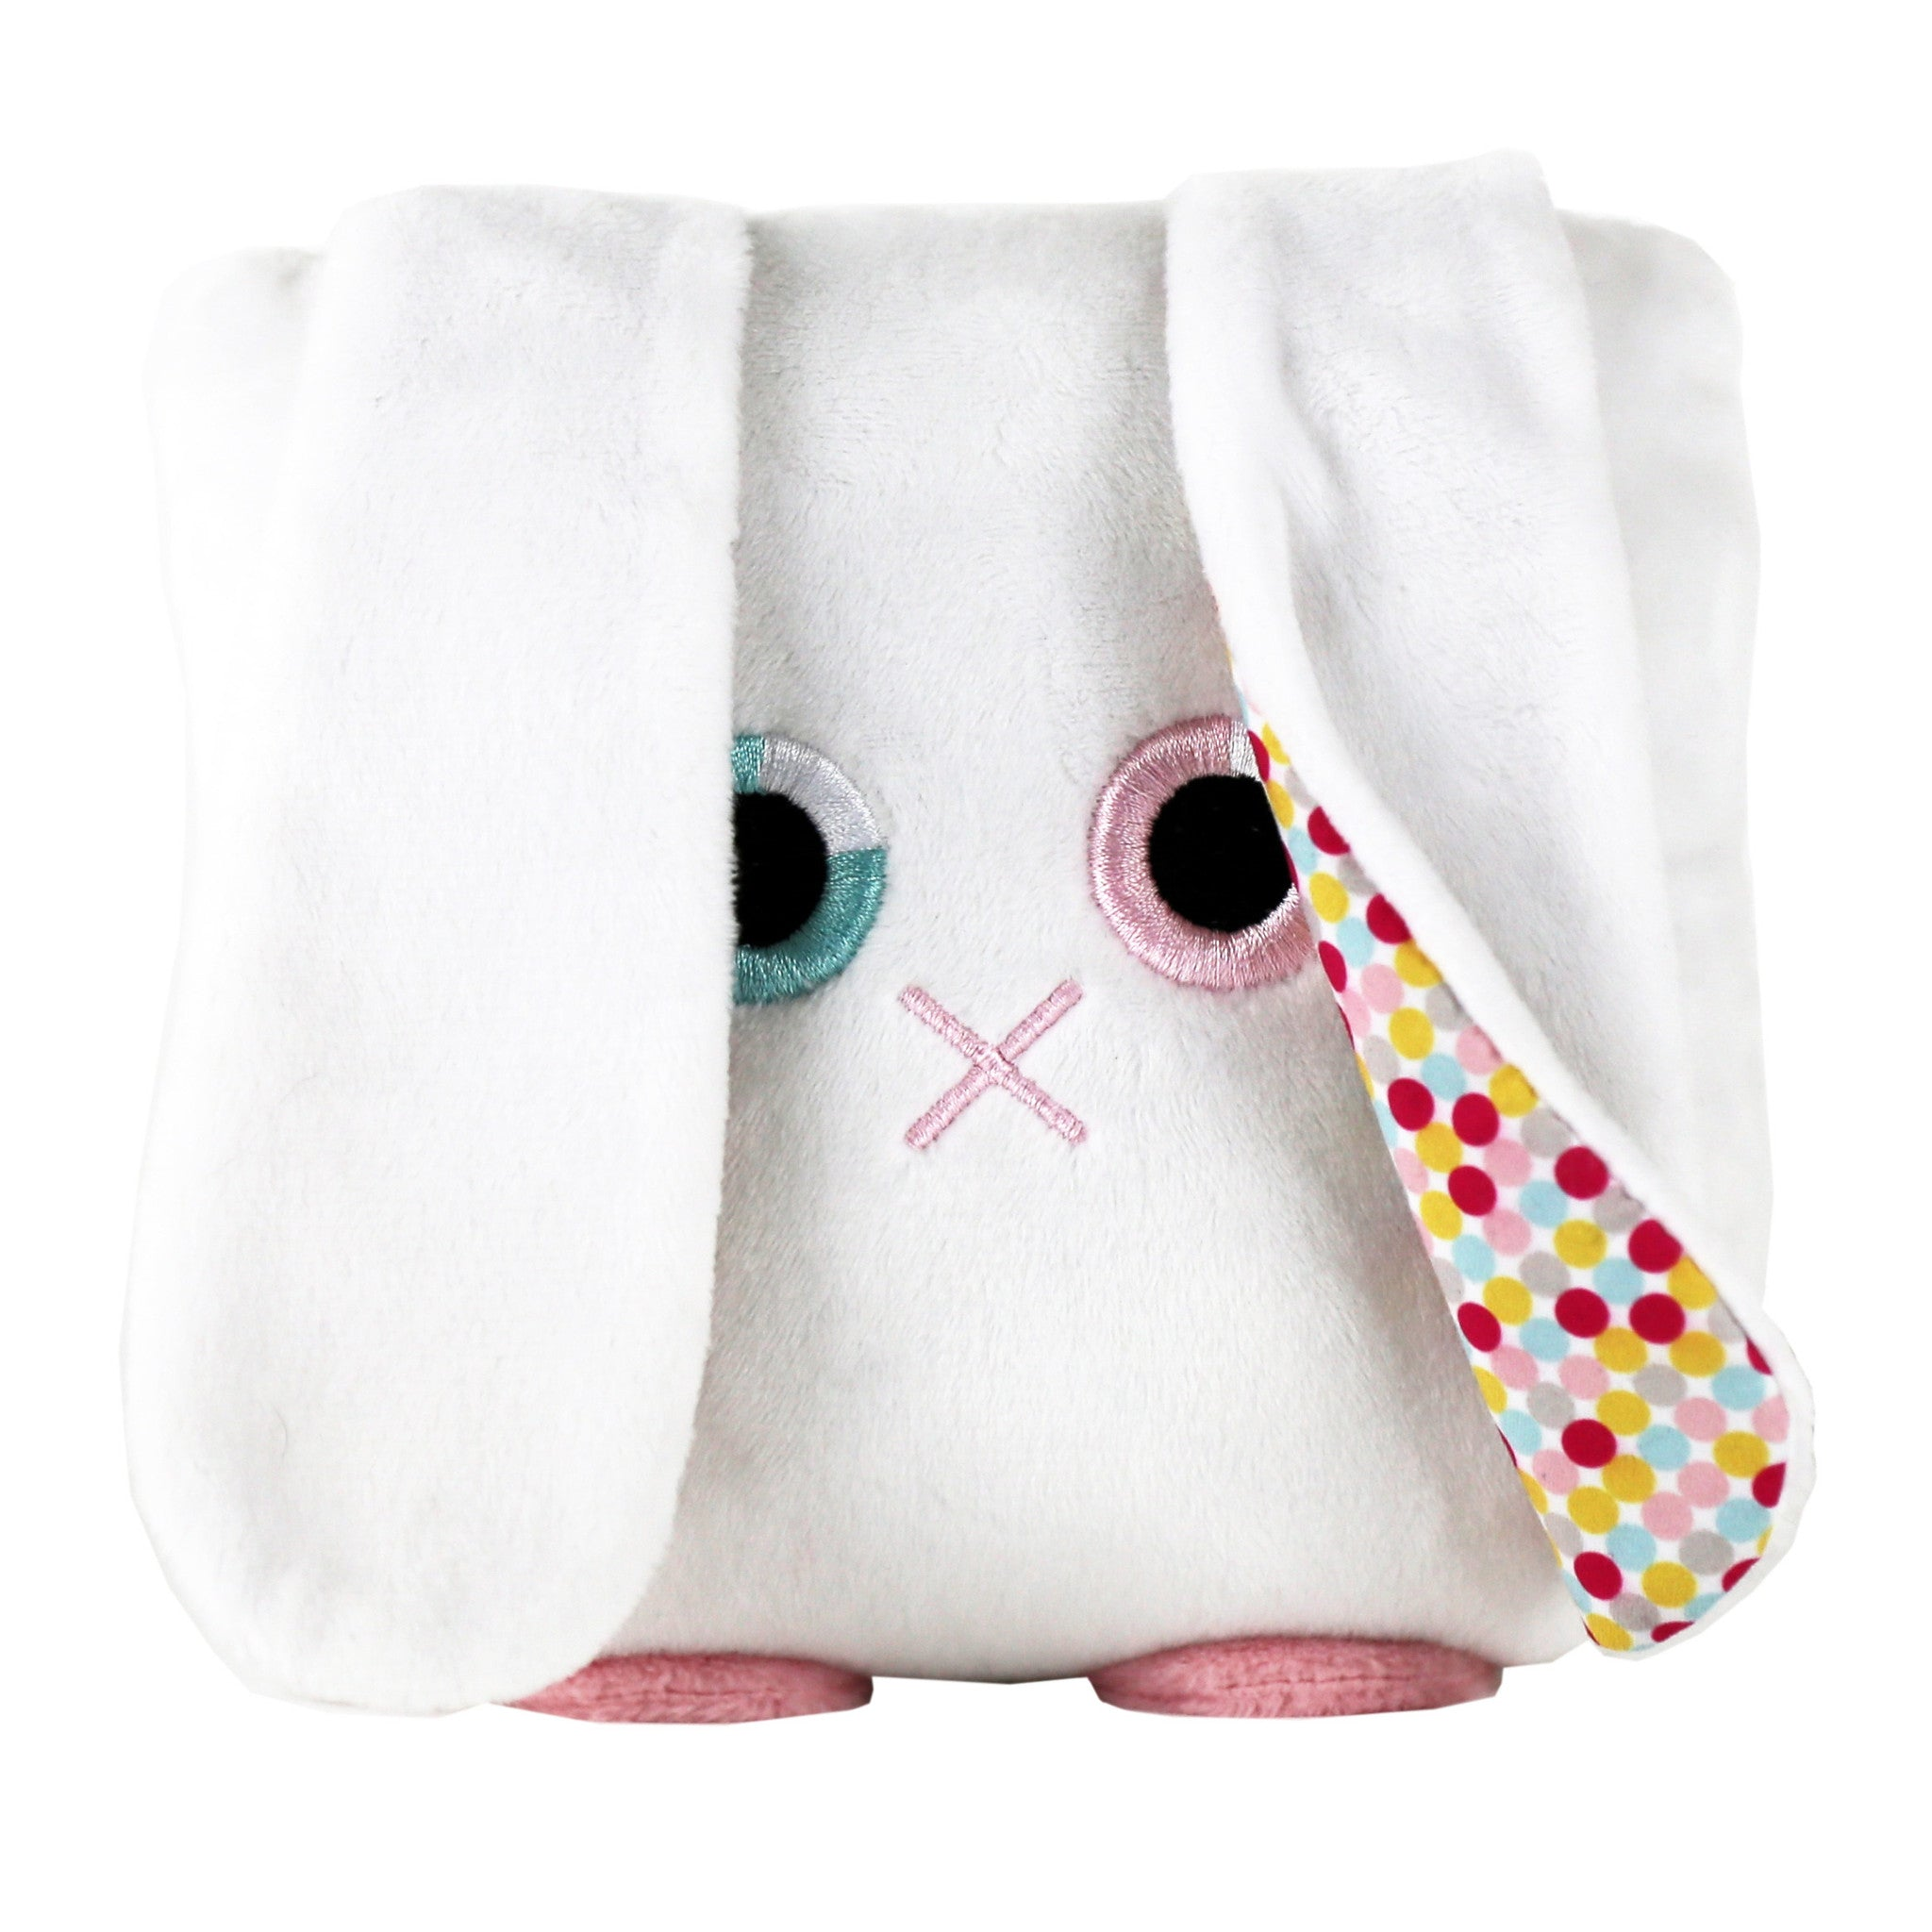 Plush rabbit stuffed animal bunny toy with a useful back pocket